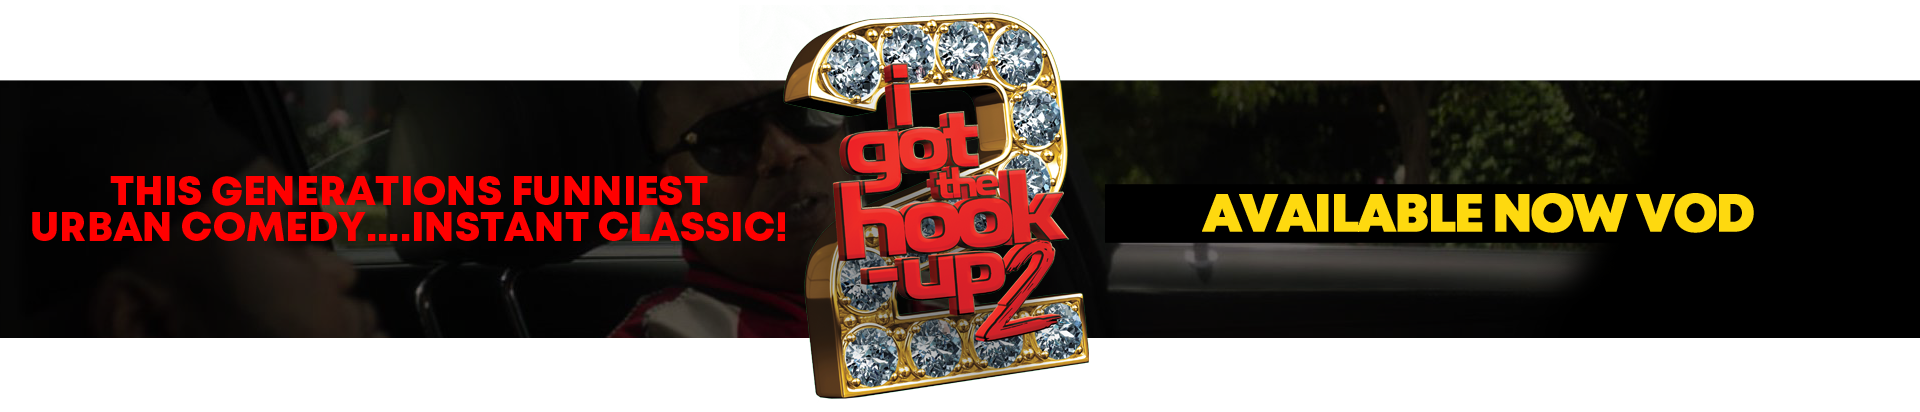 Soundtracks – I Got The Hook Up 2